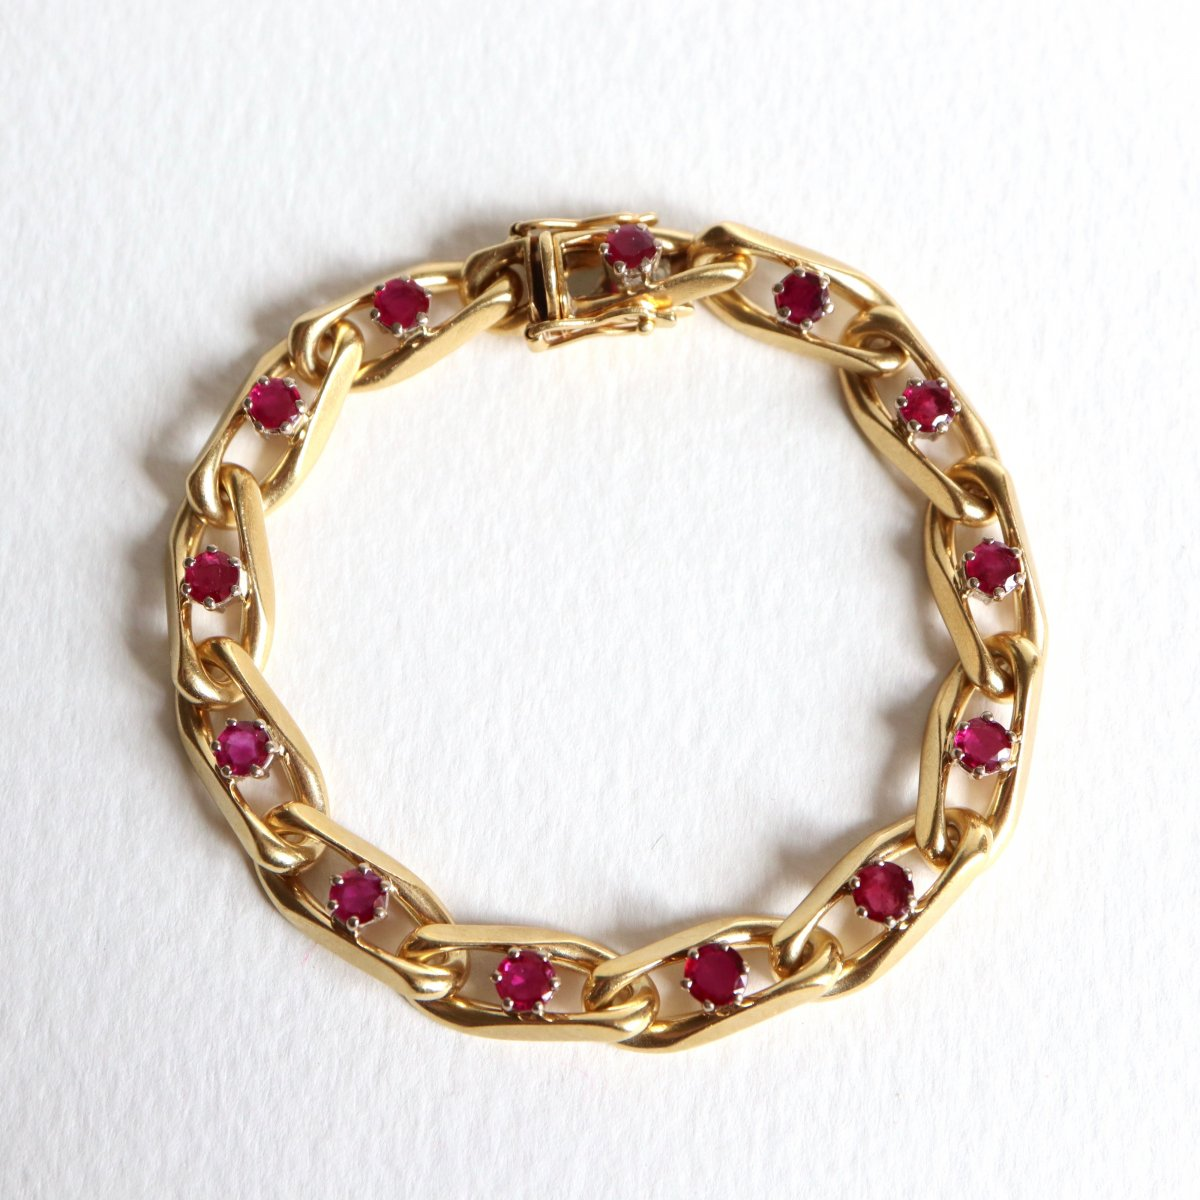 Chaumet Bracelet In 18kt Yellow Gold And Ruby-photo-2